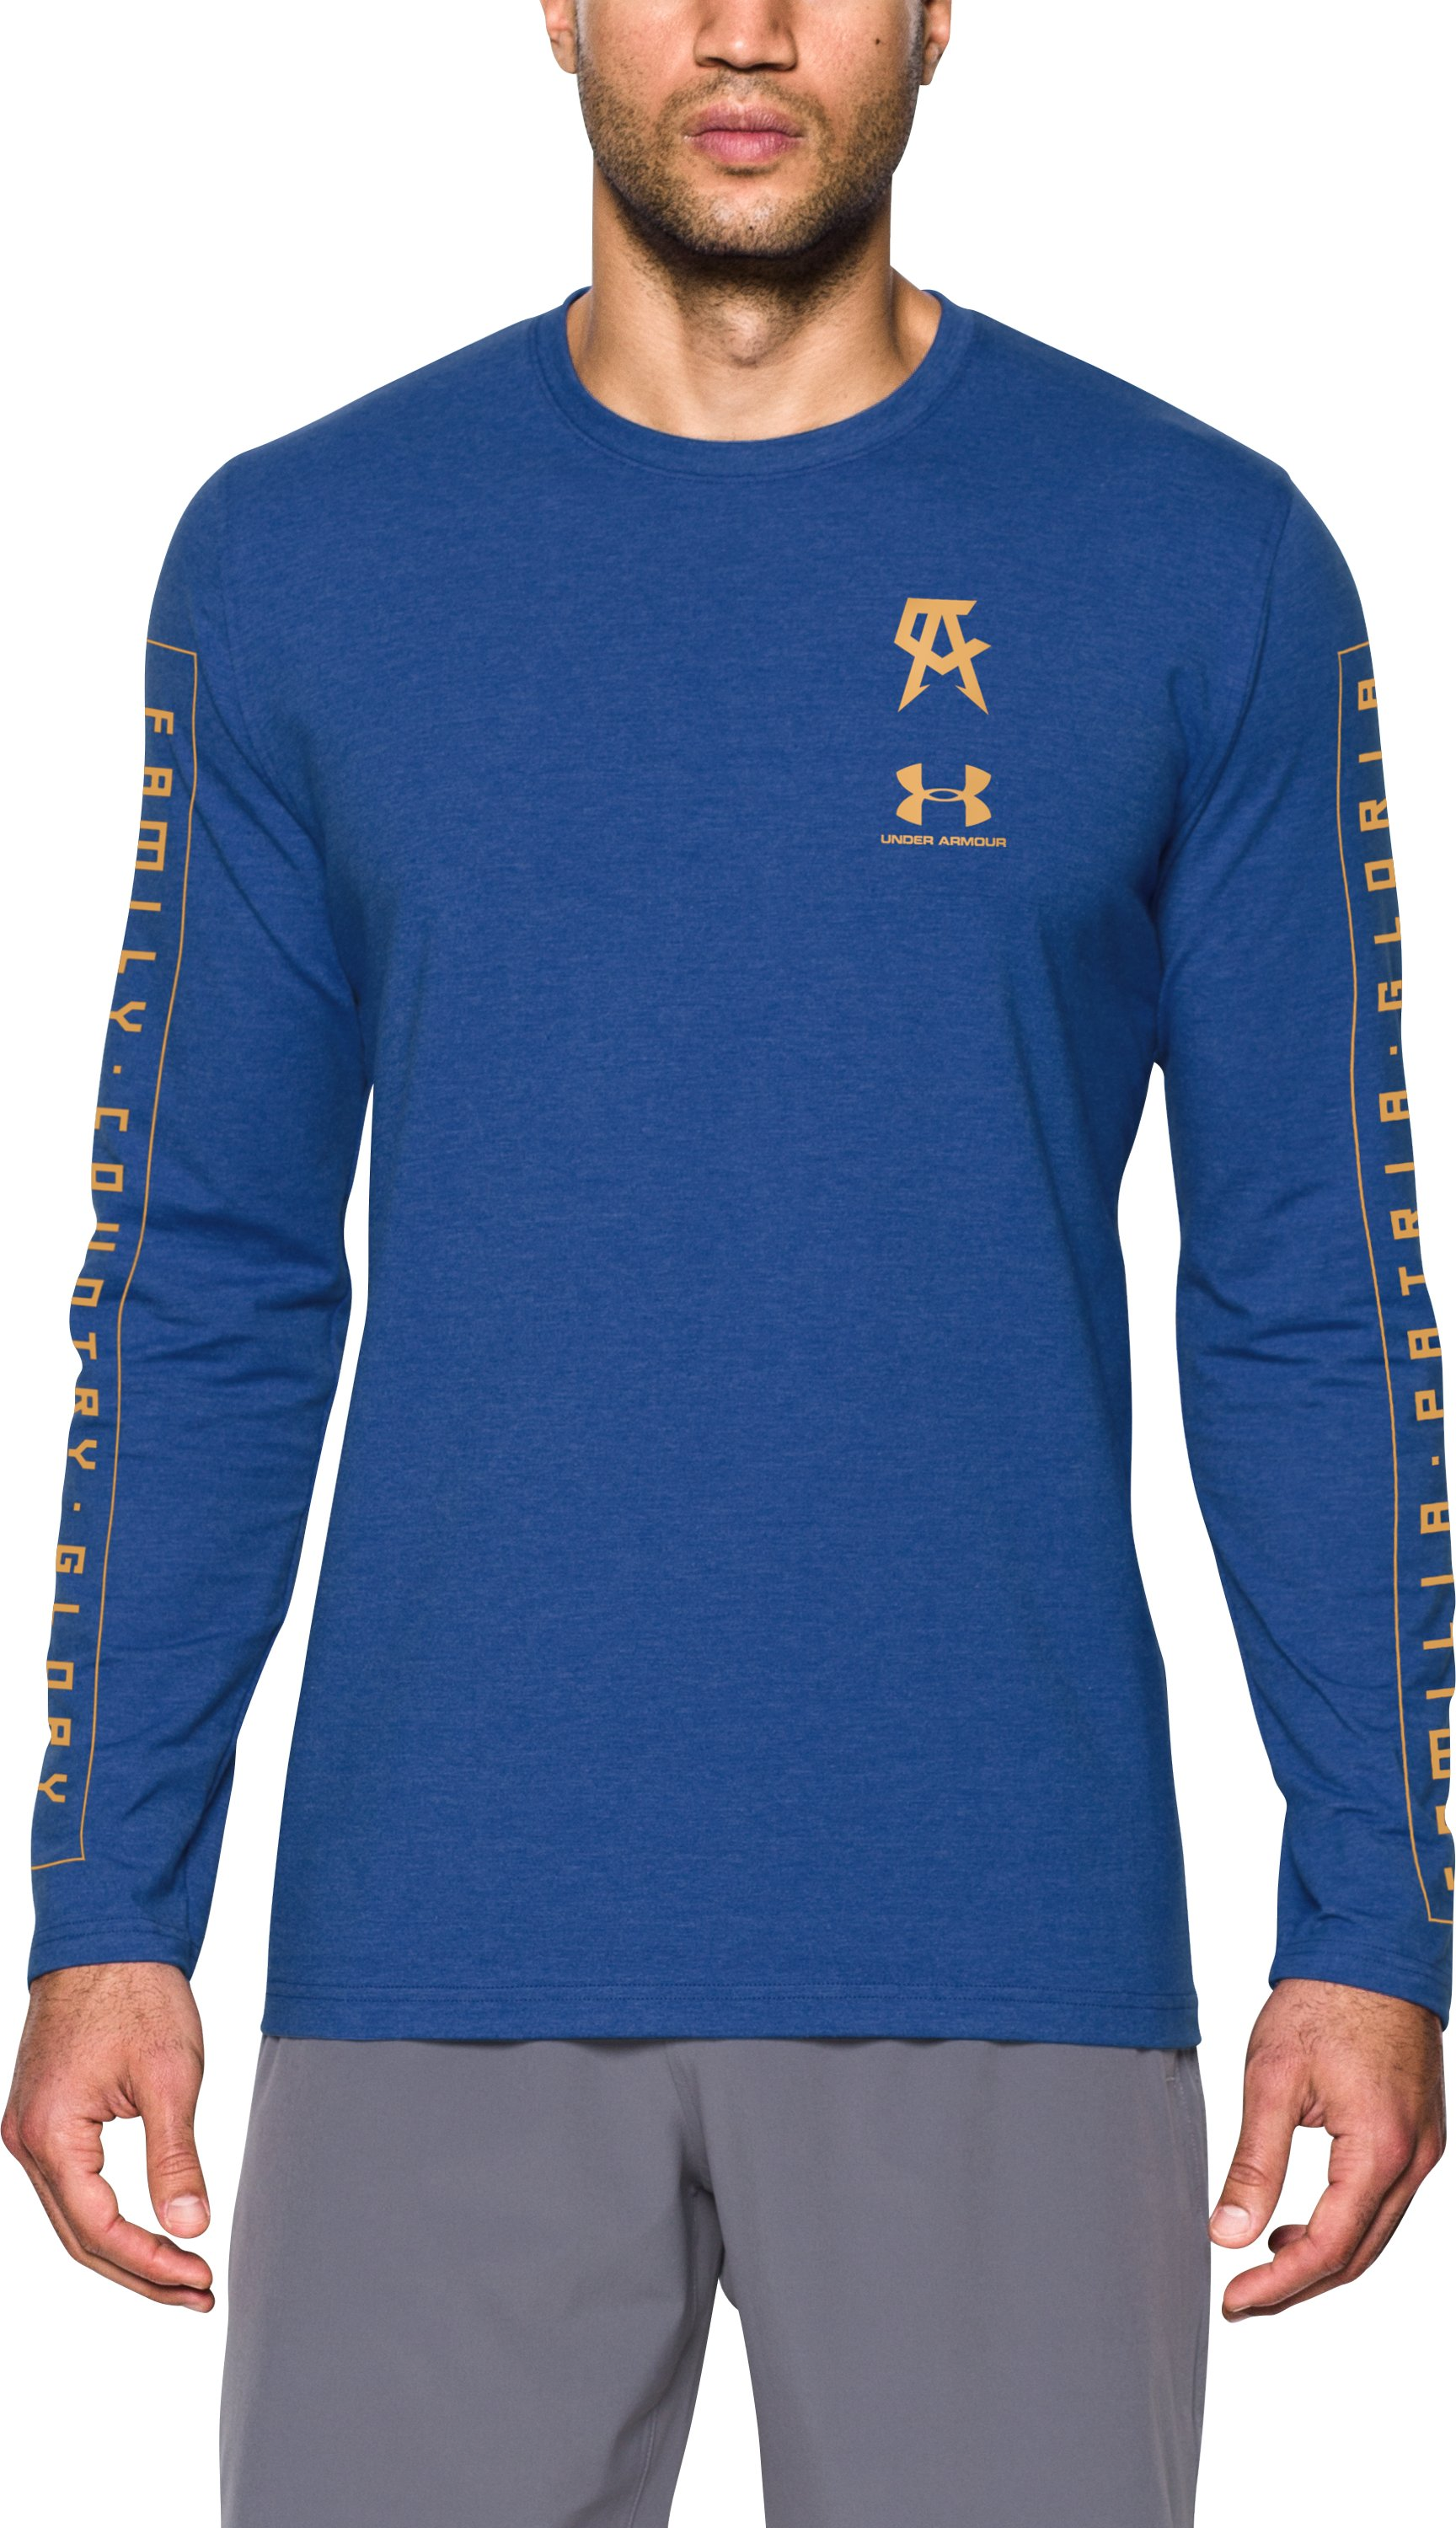 Men's UA Canelo Left Chest Long Sleeve T-Shirt, Royal